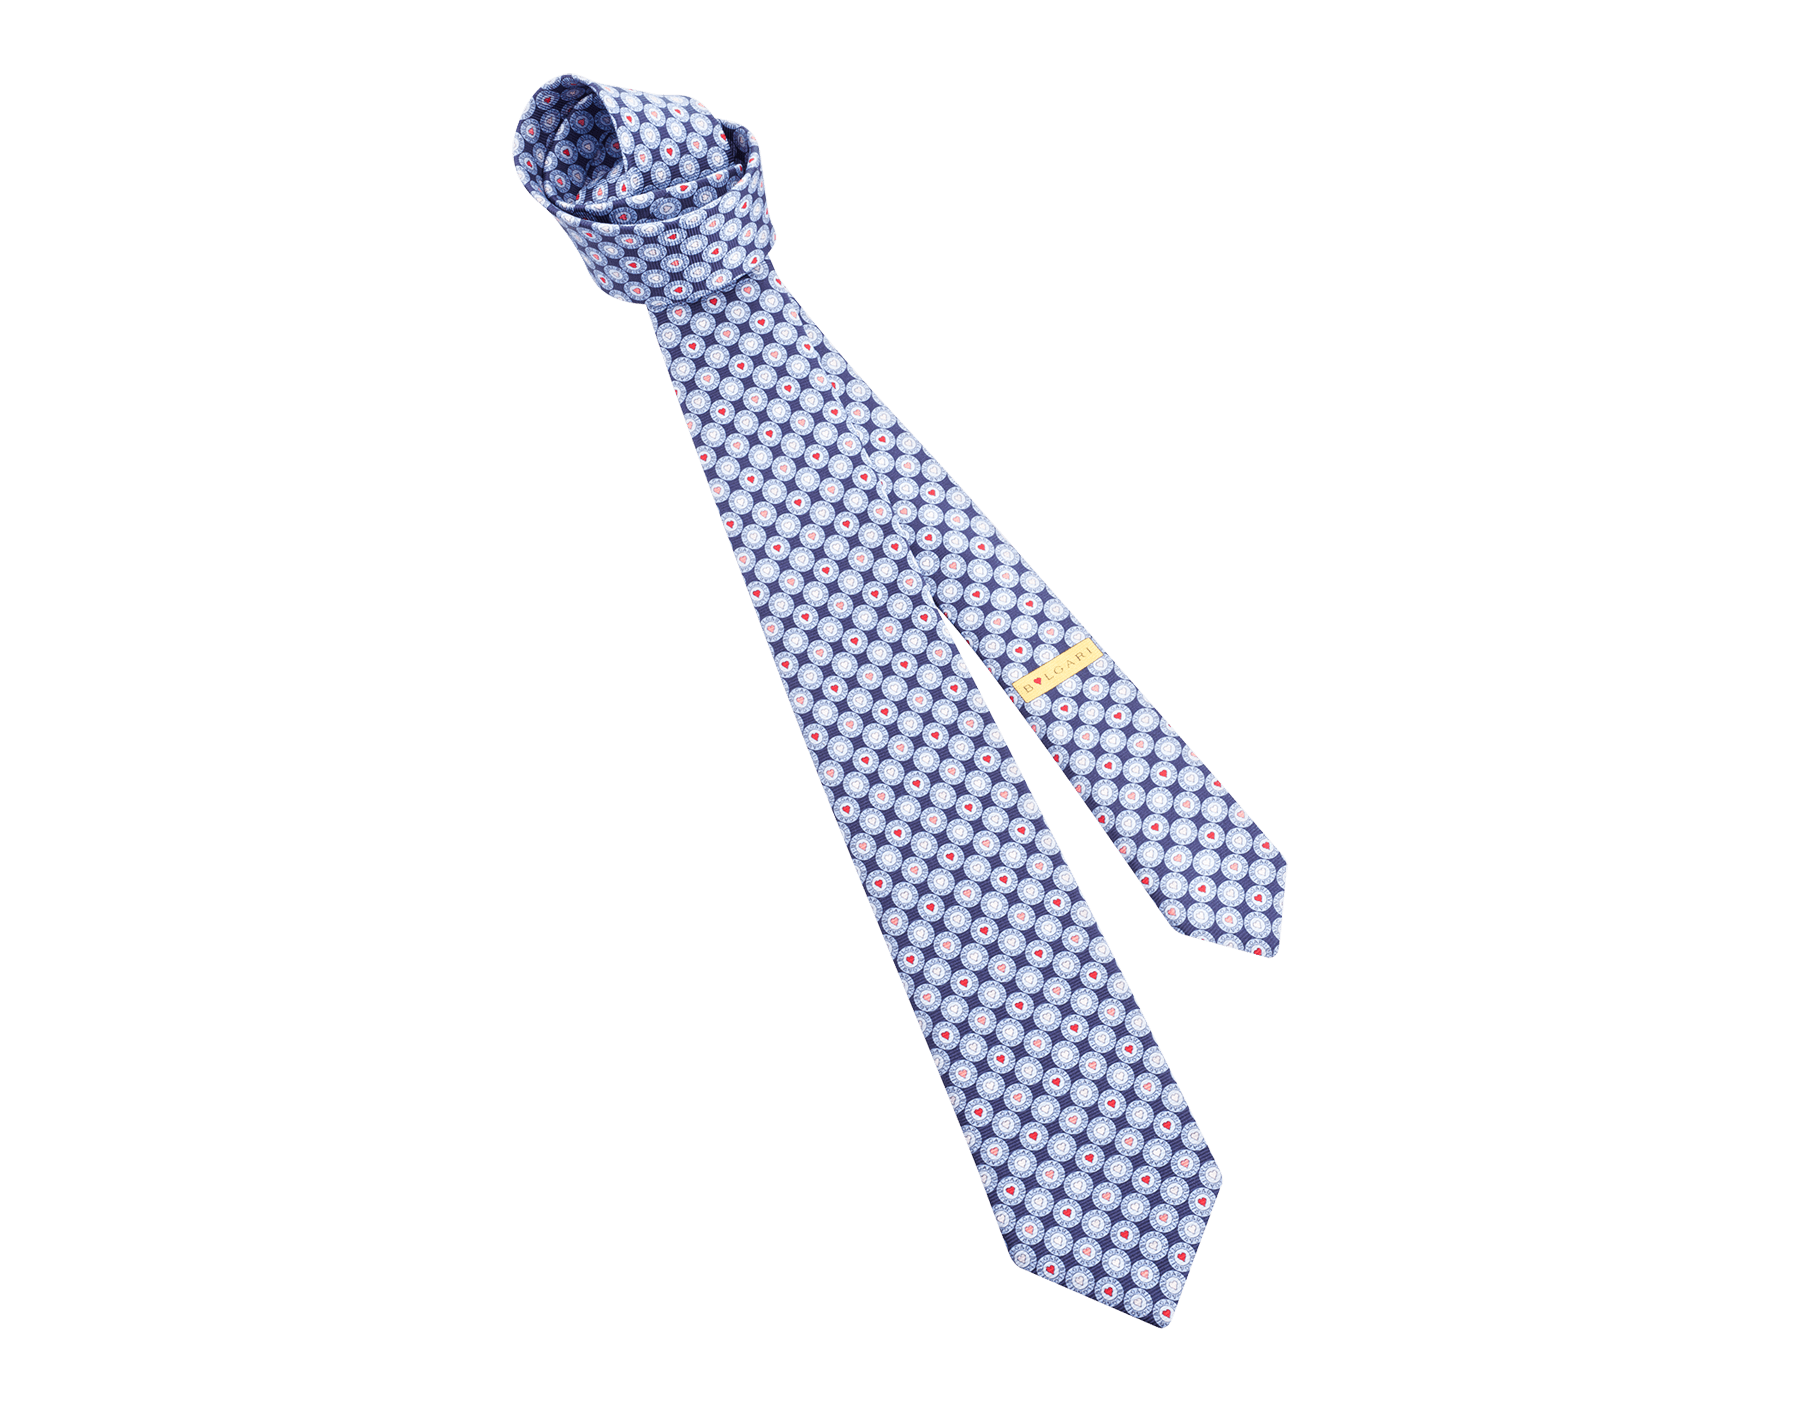 Dark Blue BB Heart Logo pattern seven-fold tie in fine saglione printed silk. 244181 image 1